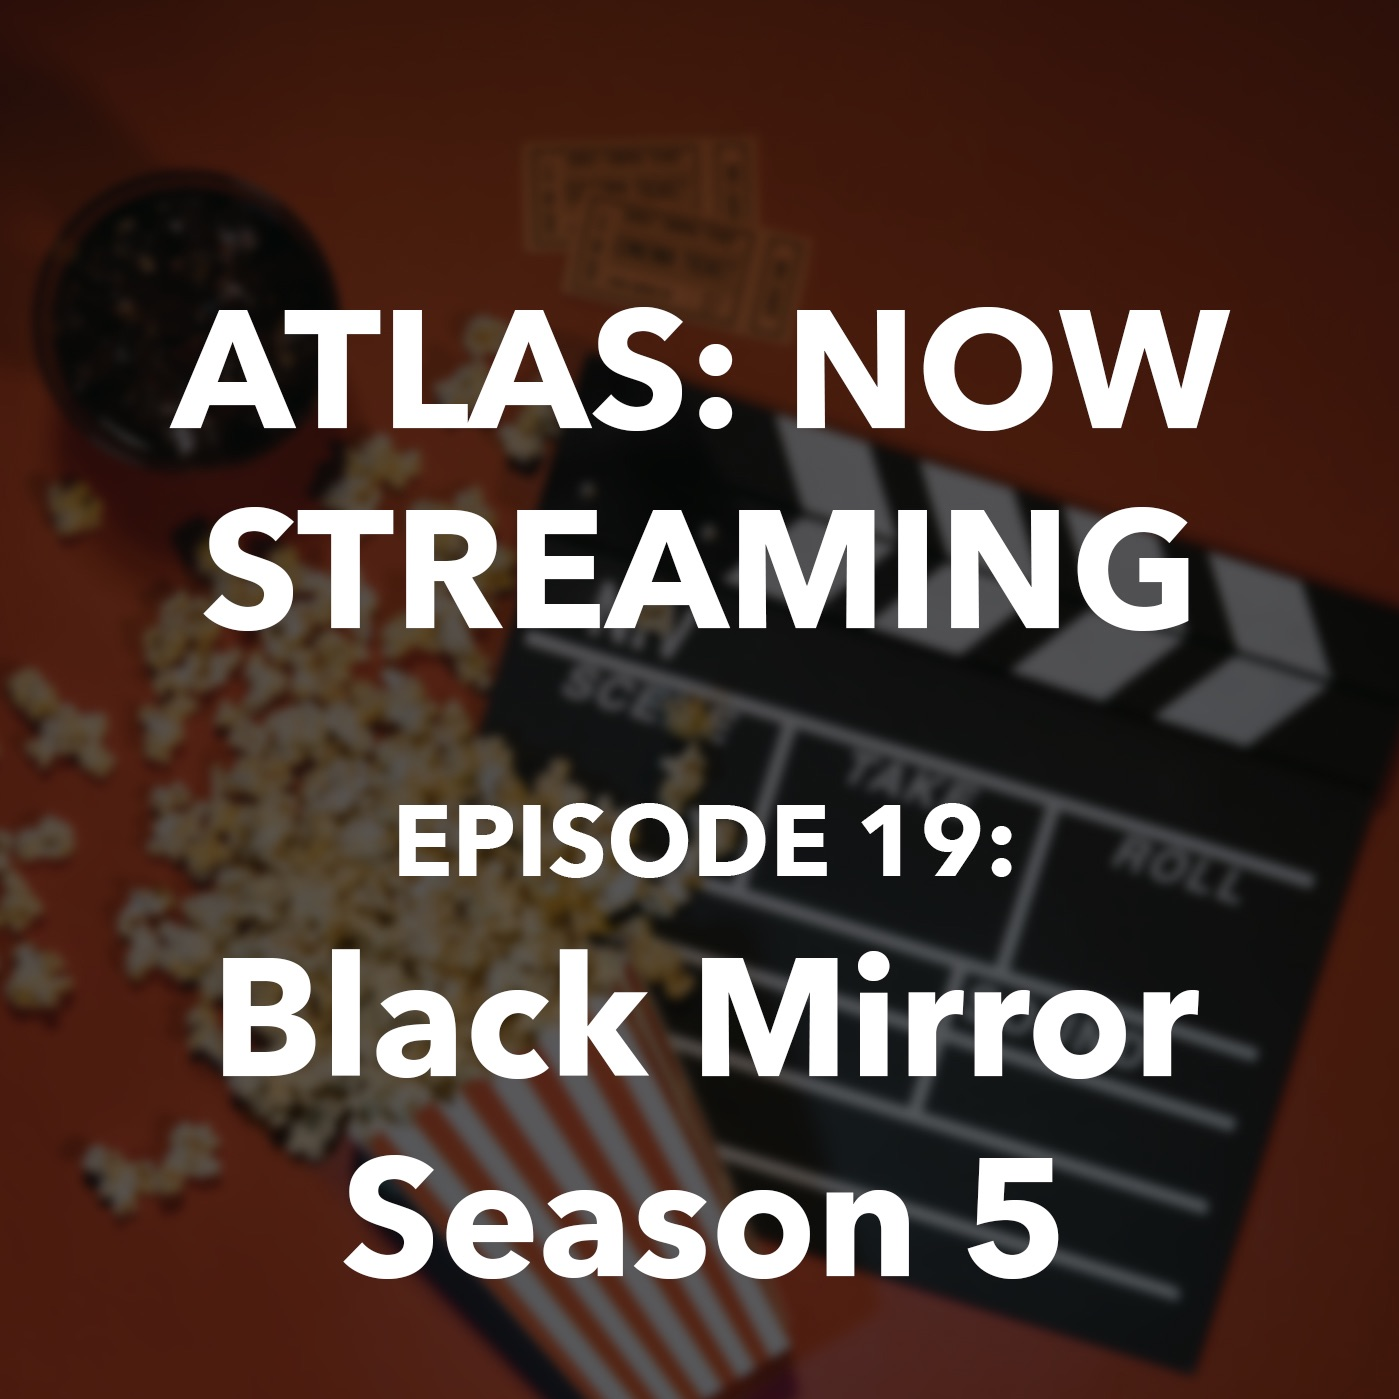 Atlas: Now Streaming Episode 19 - Black Mirror Season 5